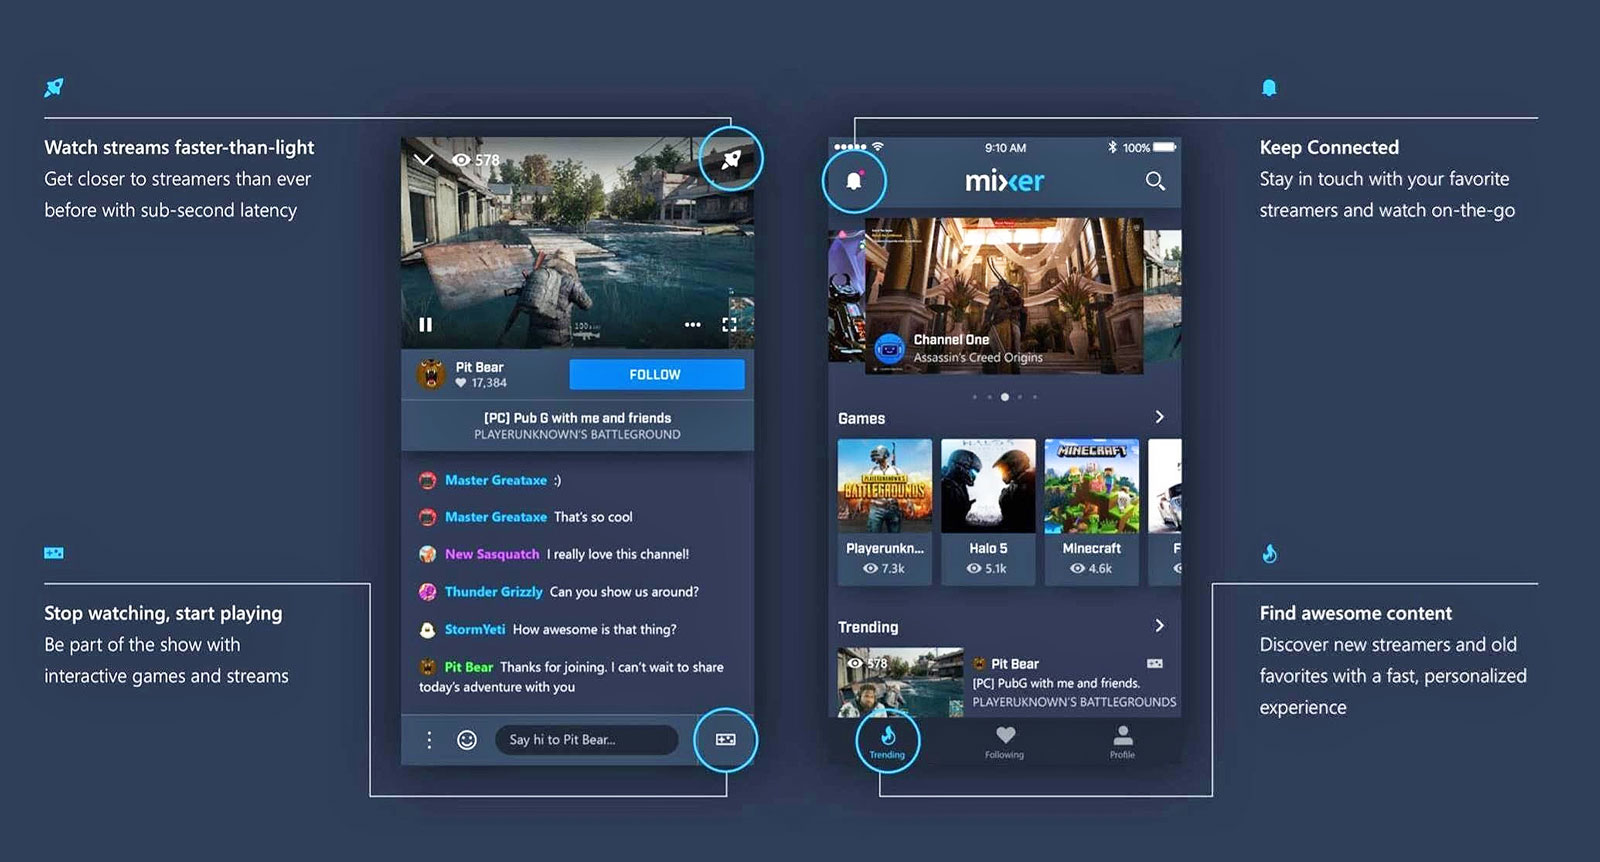 Microsoft's Mixer app relaunches with more streaming features